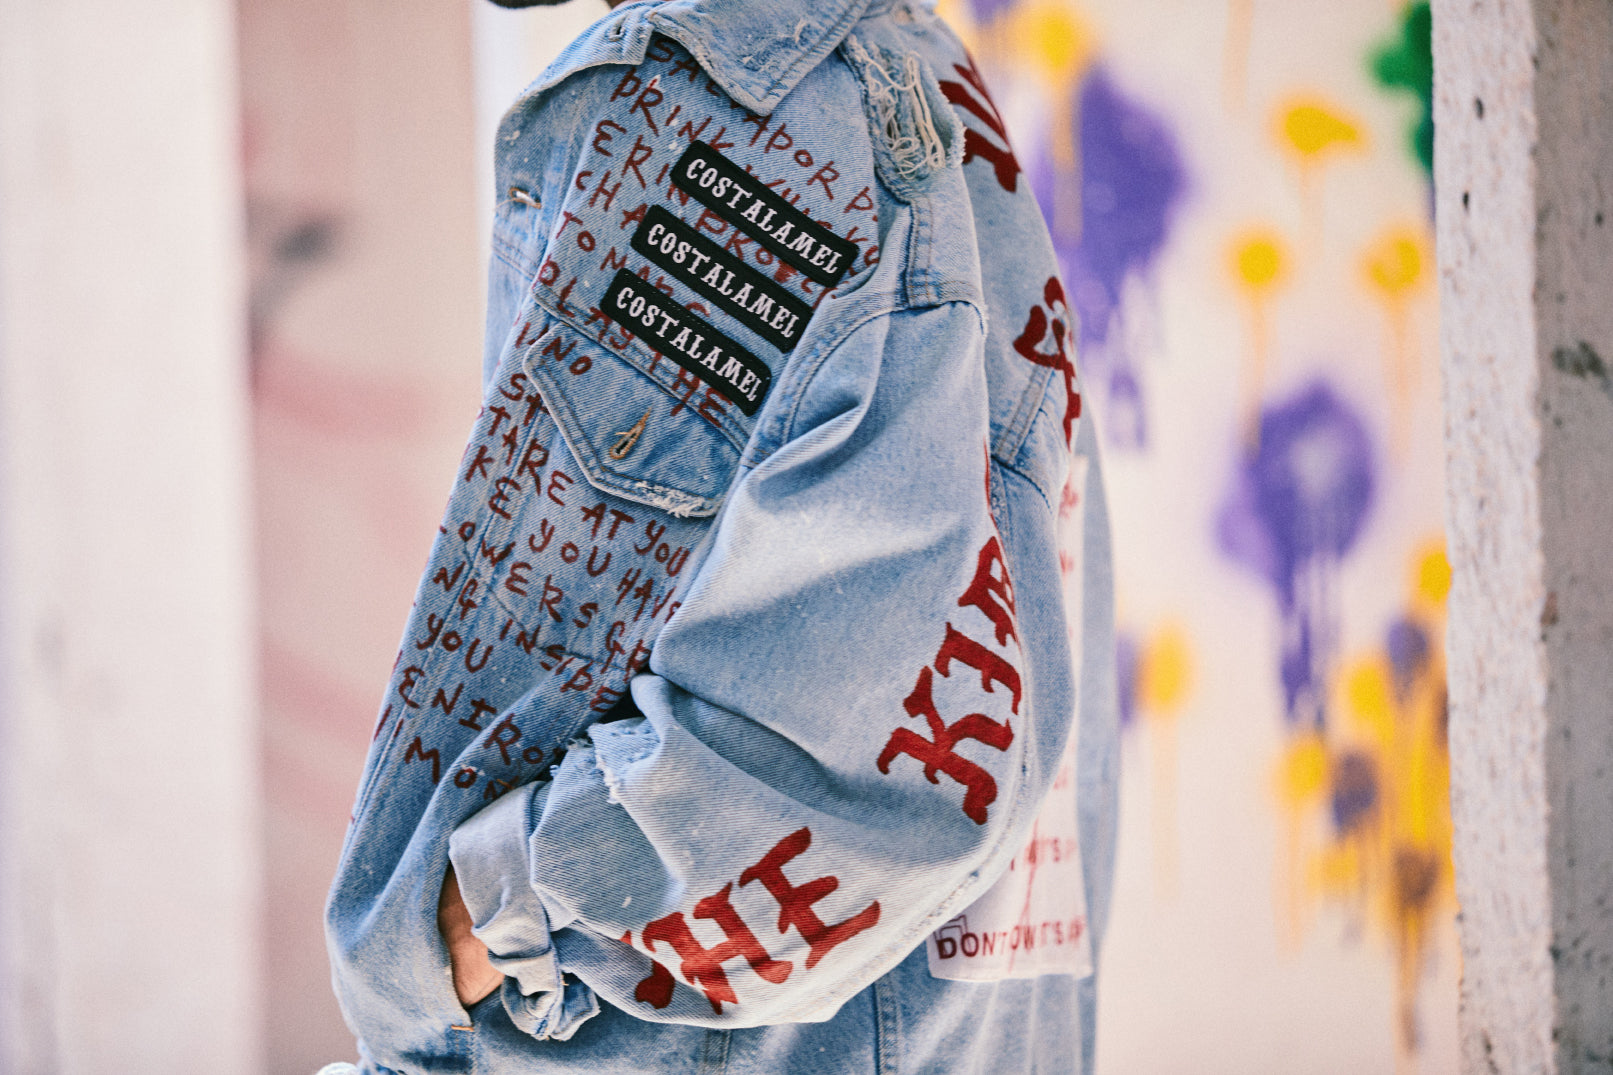 when I grow up – denim jacket